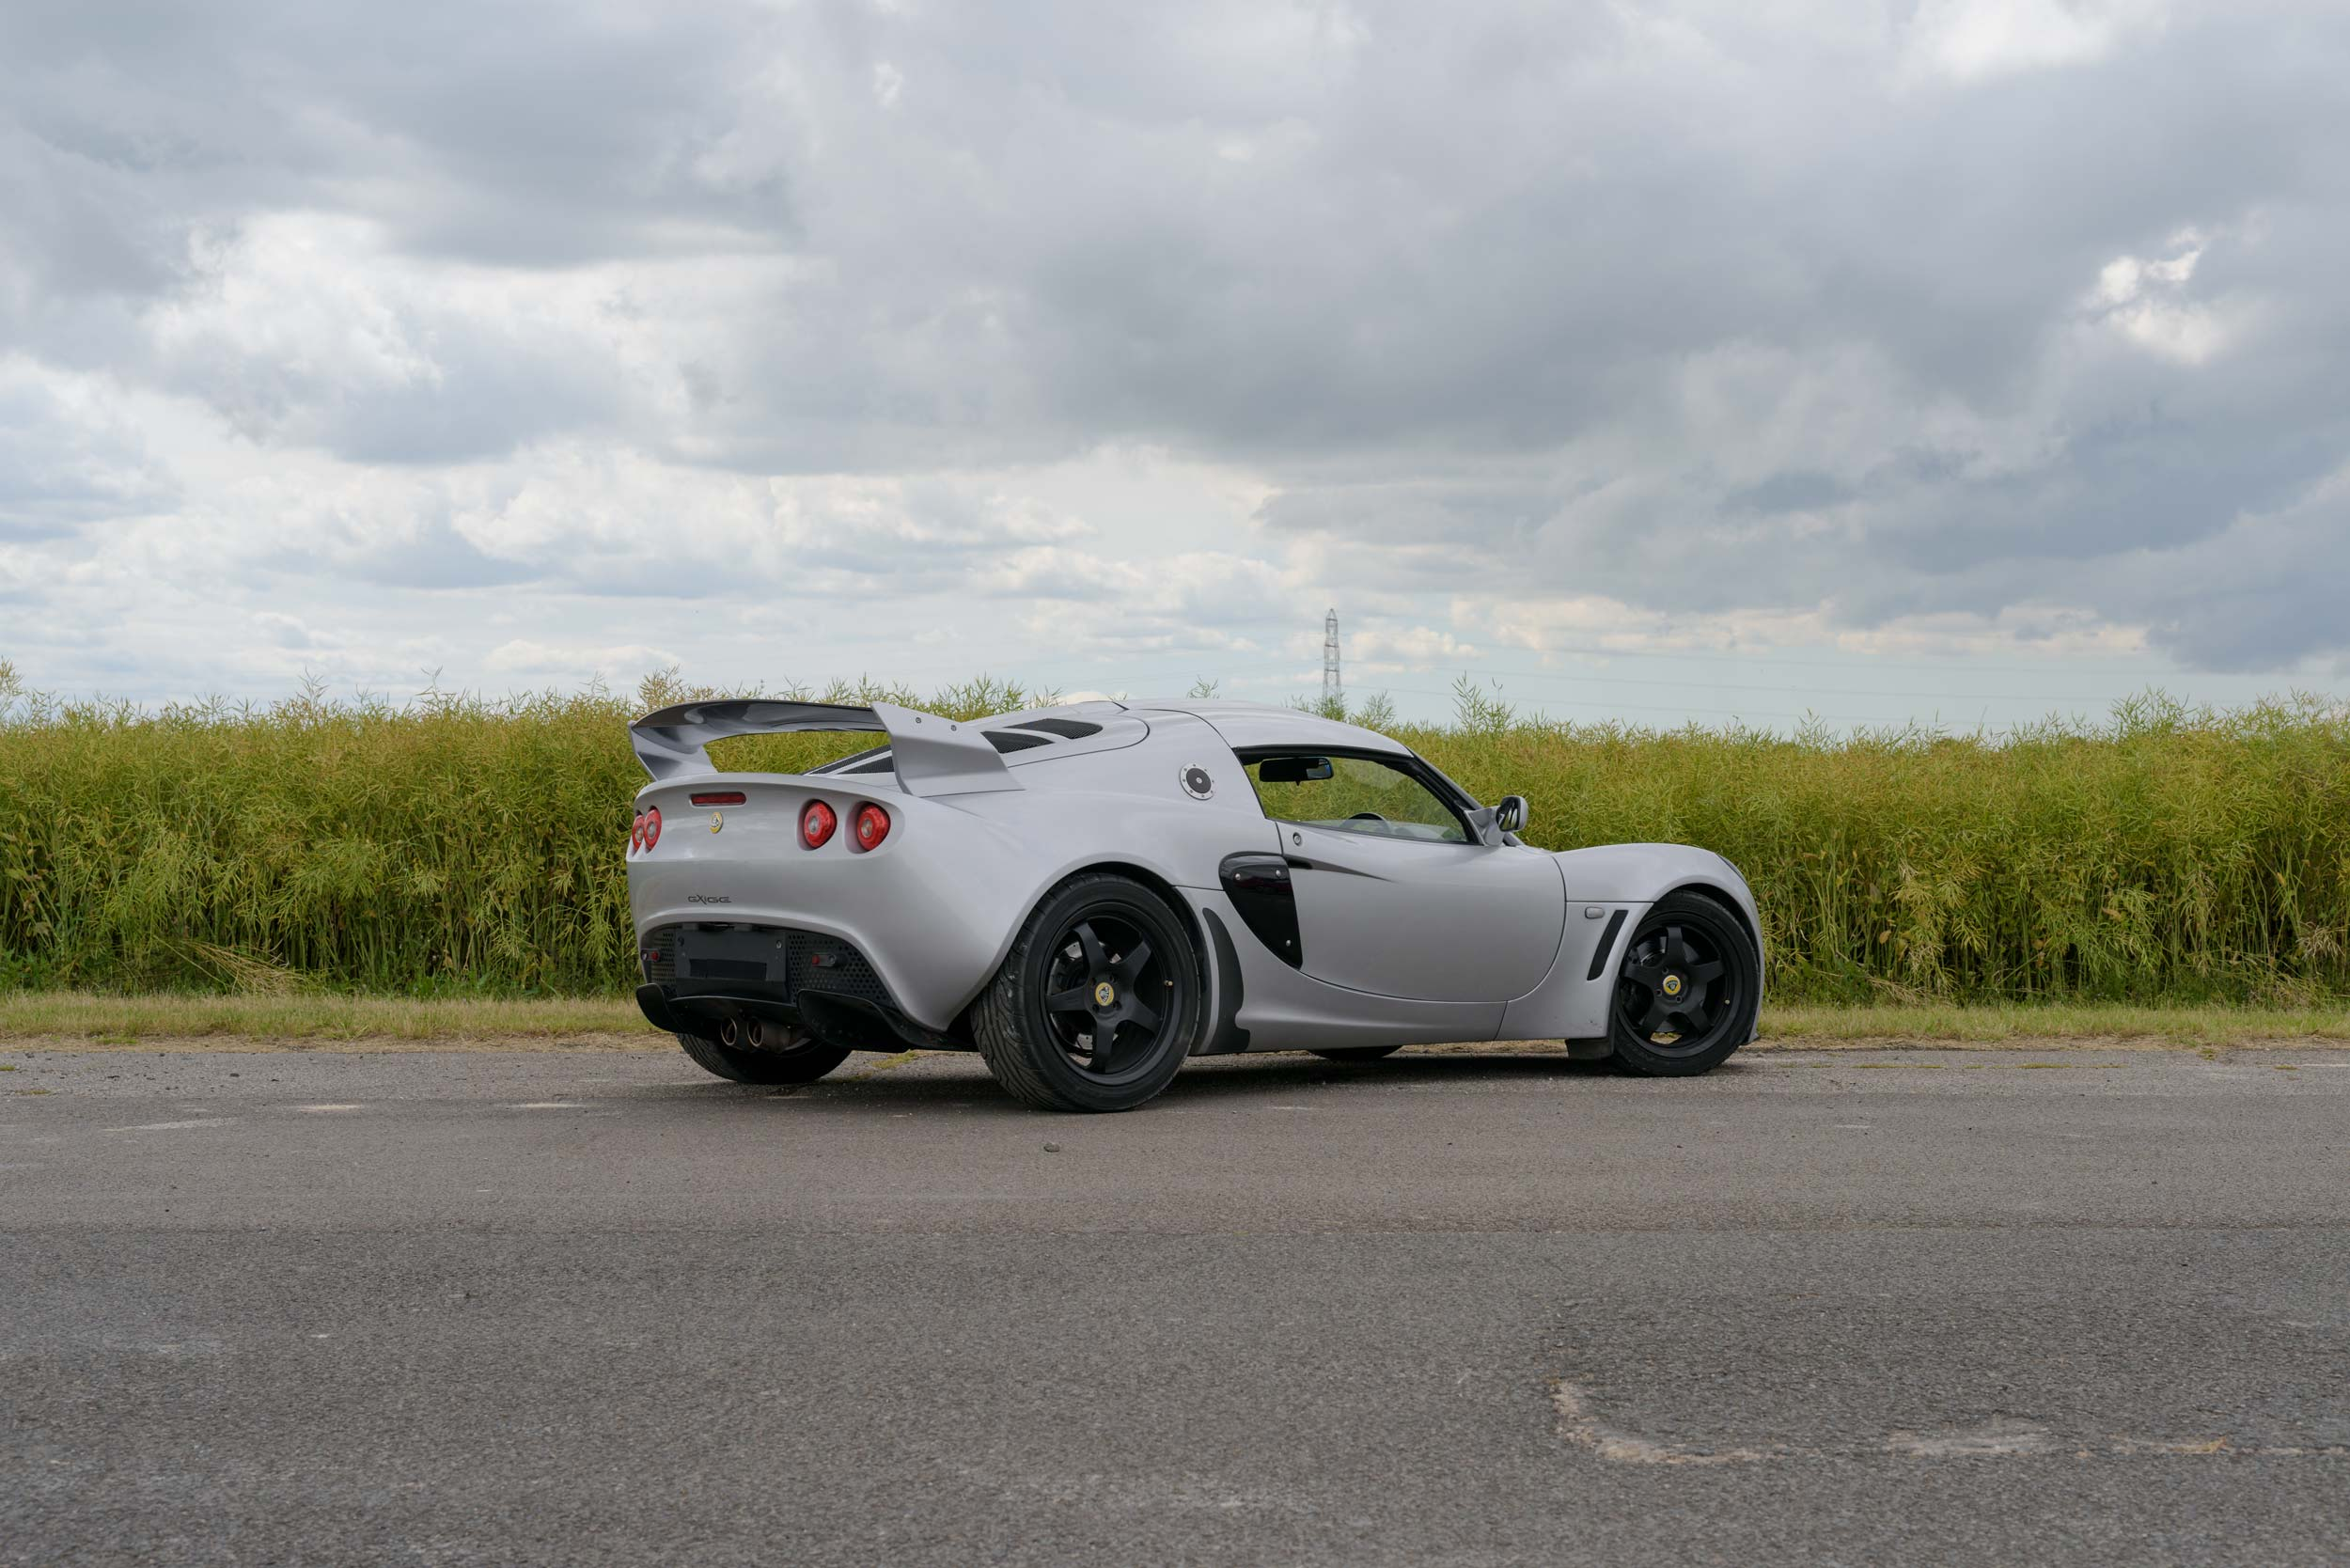 Lotus Elise Before Wipdesigns Automotive Photographer